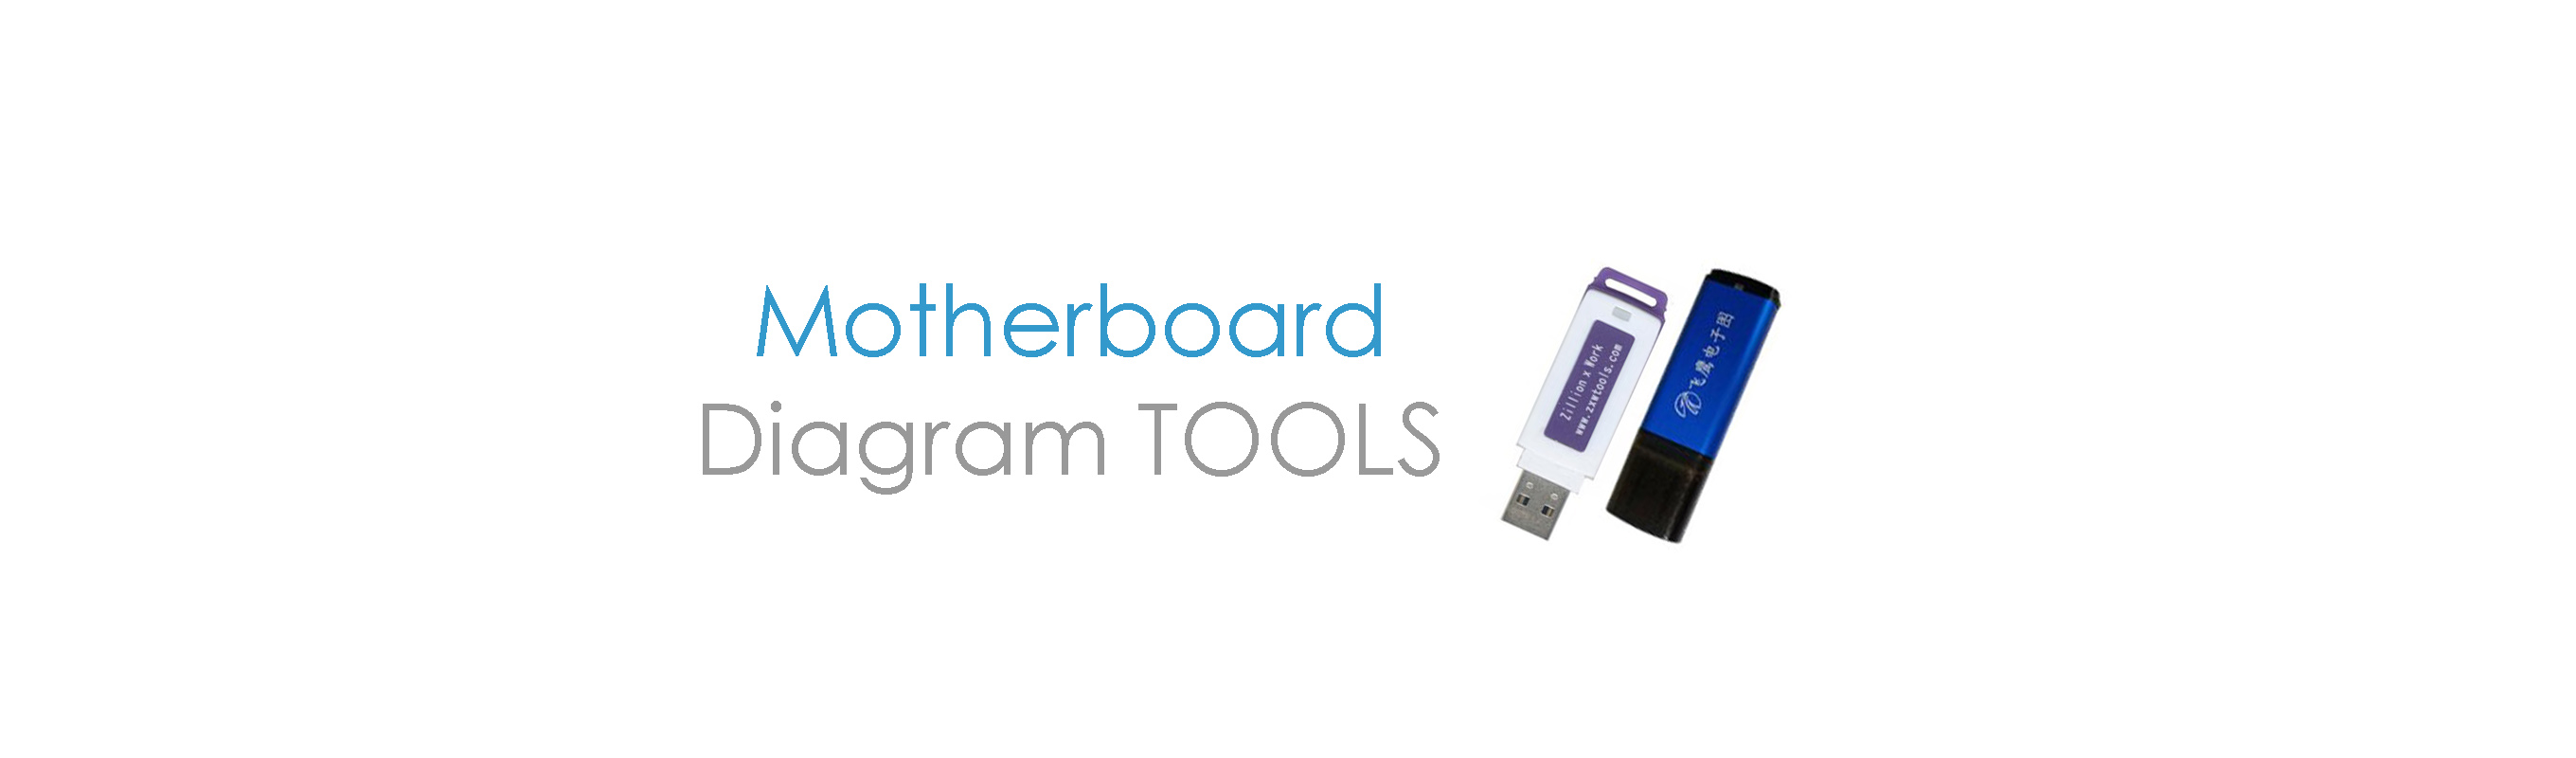 Motherboard Diagram Tools